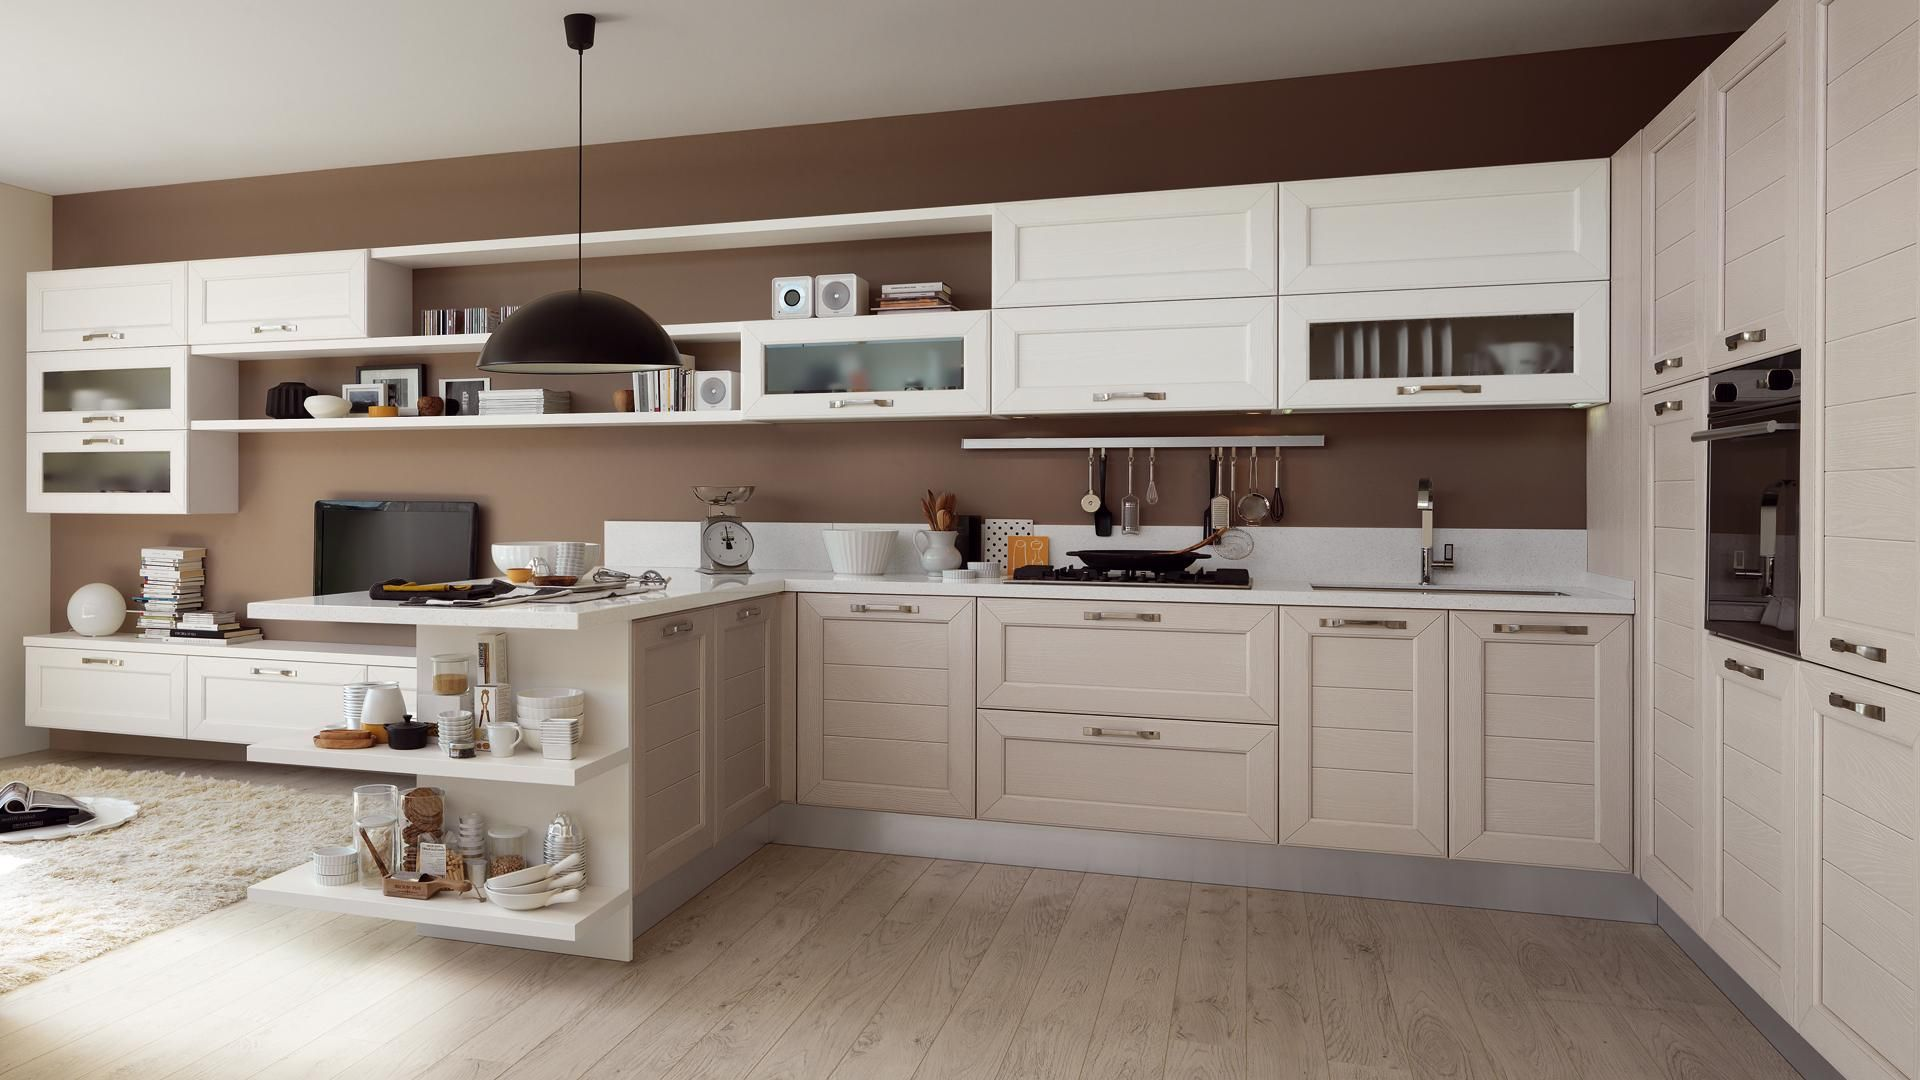 Claudia - Cucine Classiche - Cucine Lube | Spaces Where Eating Is A ...